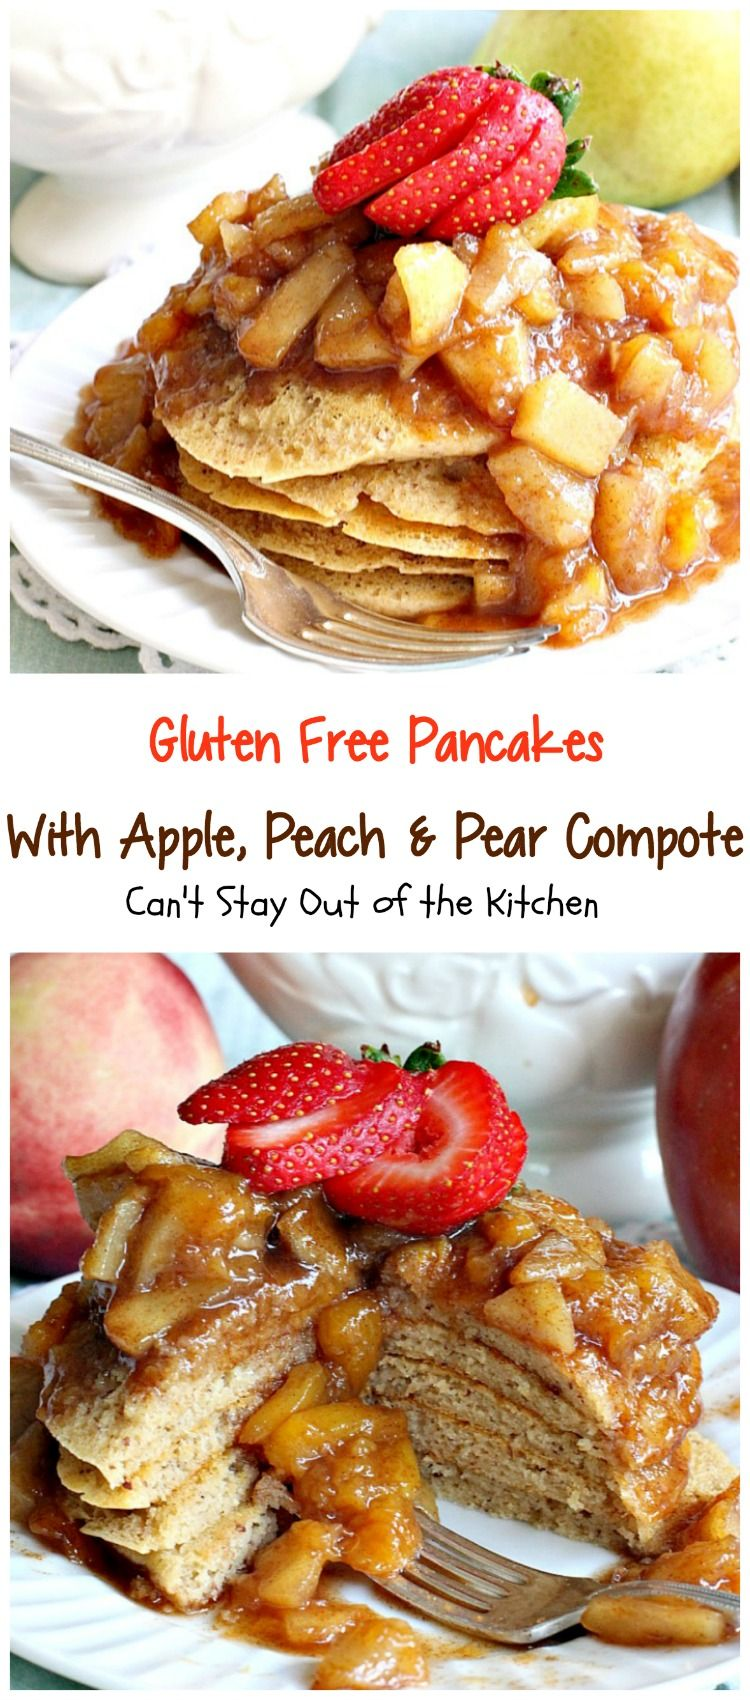 Gluten Free Pancakes with Apple, Peach & Pear Compote   Can't Stay Out of the Kitchen   absolutely delectable #pancakes with a naturally sweet compote. Great idea for a #holiday #breakfast. Healthy, #cleaneating #glutenfree